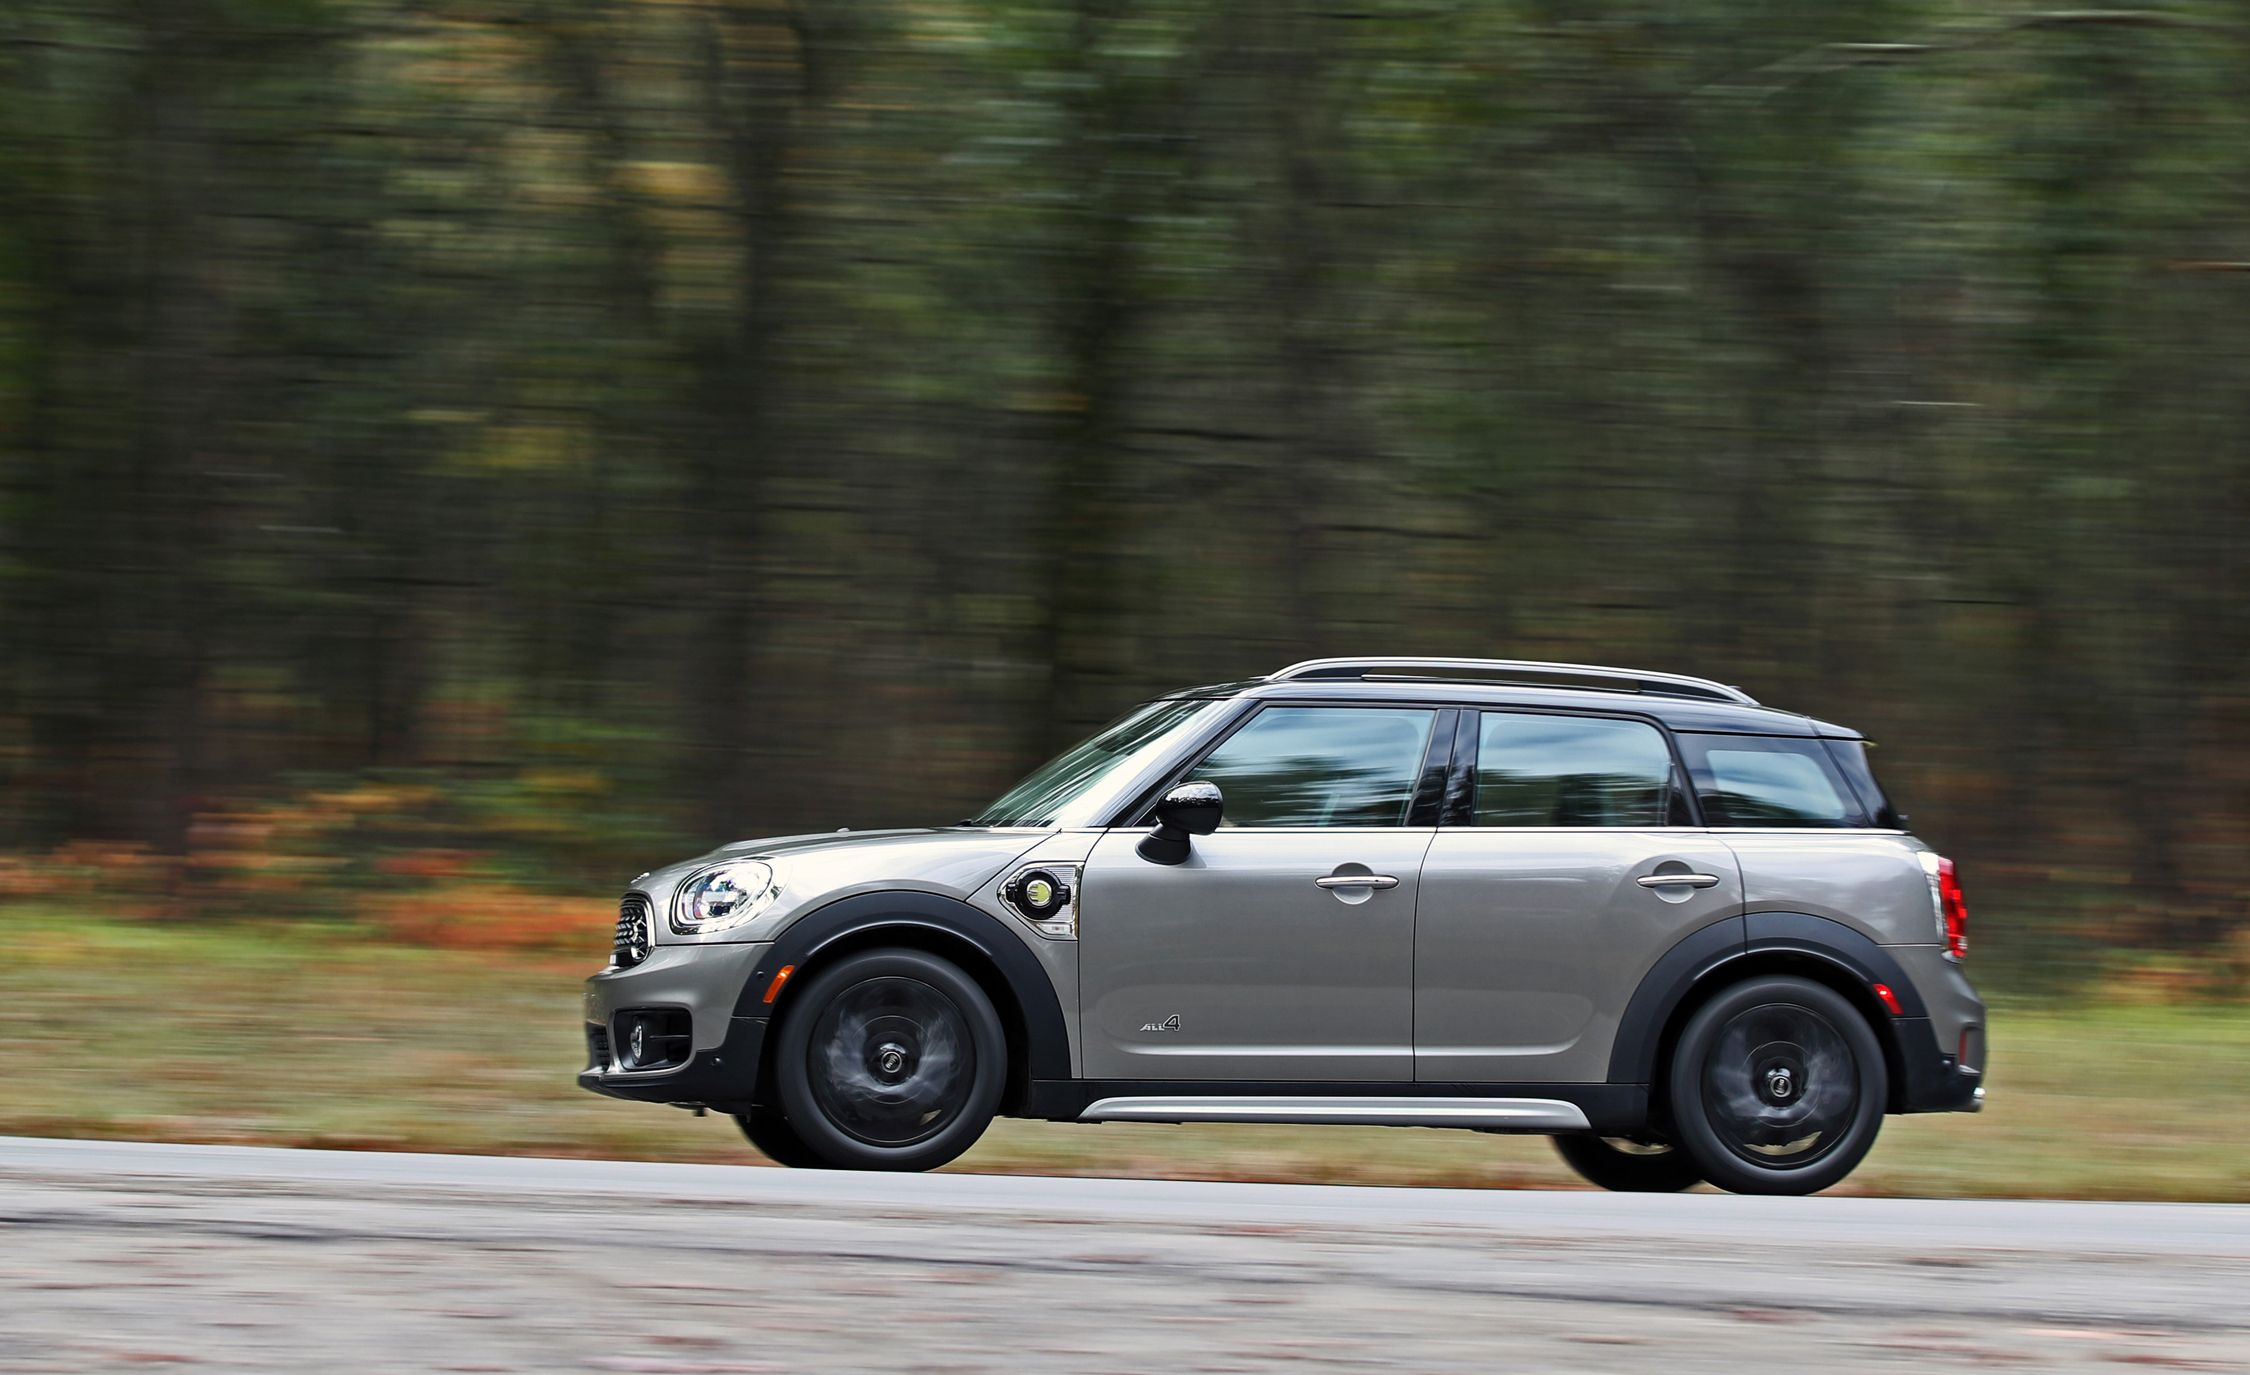 2018 Mini Cooper Countryman Fuel Economy And Driving Range Review